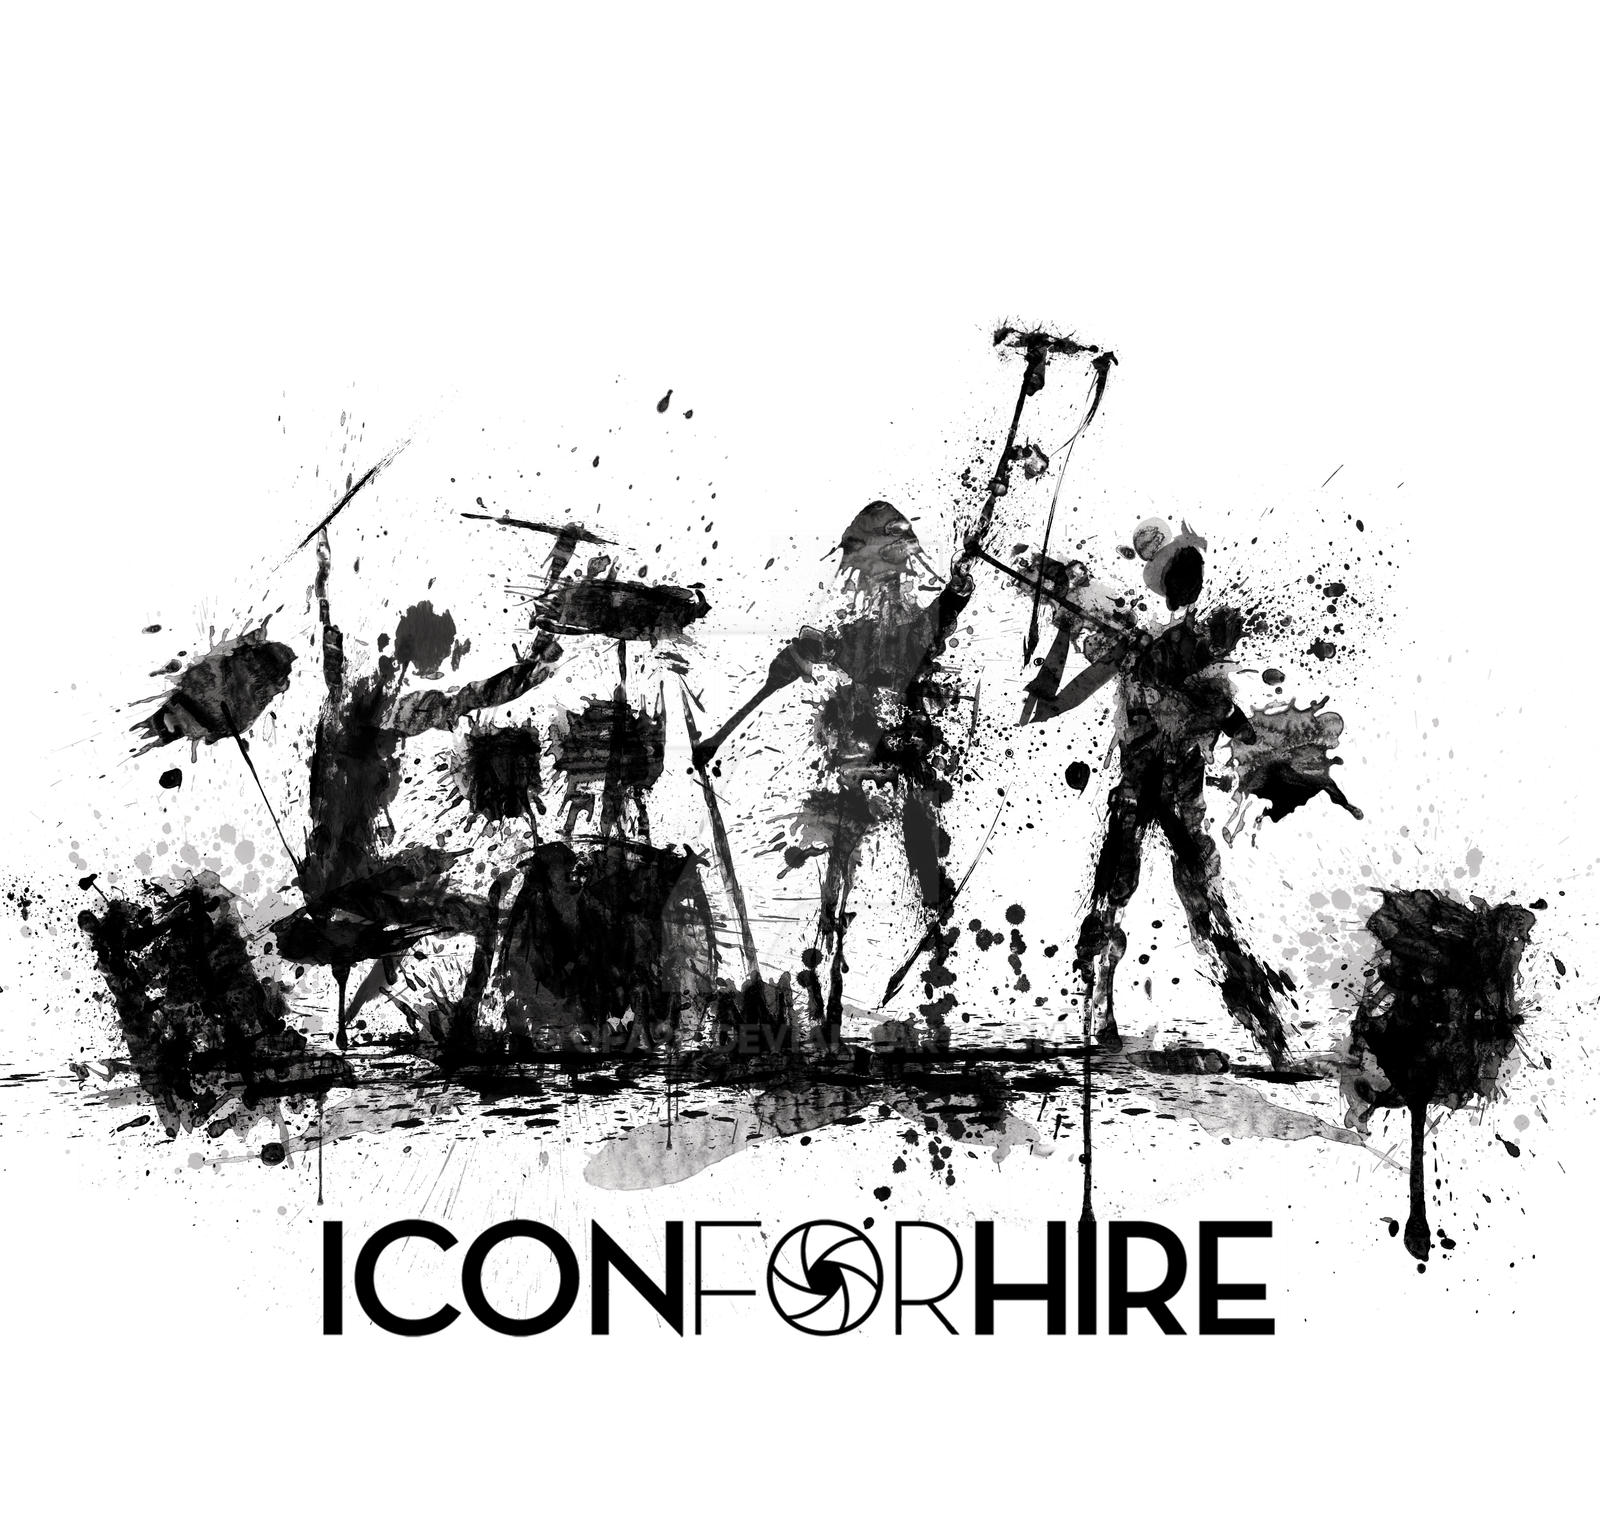 Official Icon For Hire T Shirt Design By Travis By Ofa20 On Deviantart